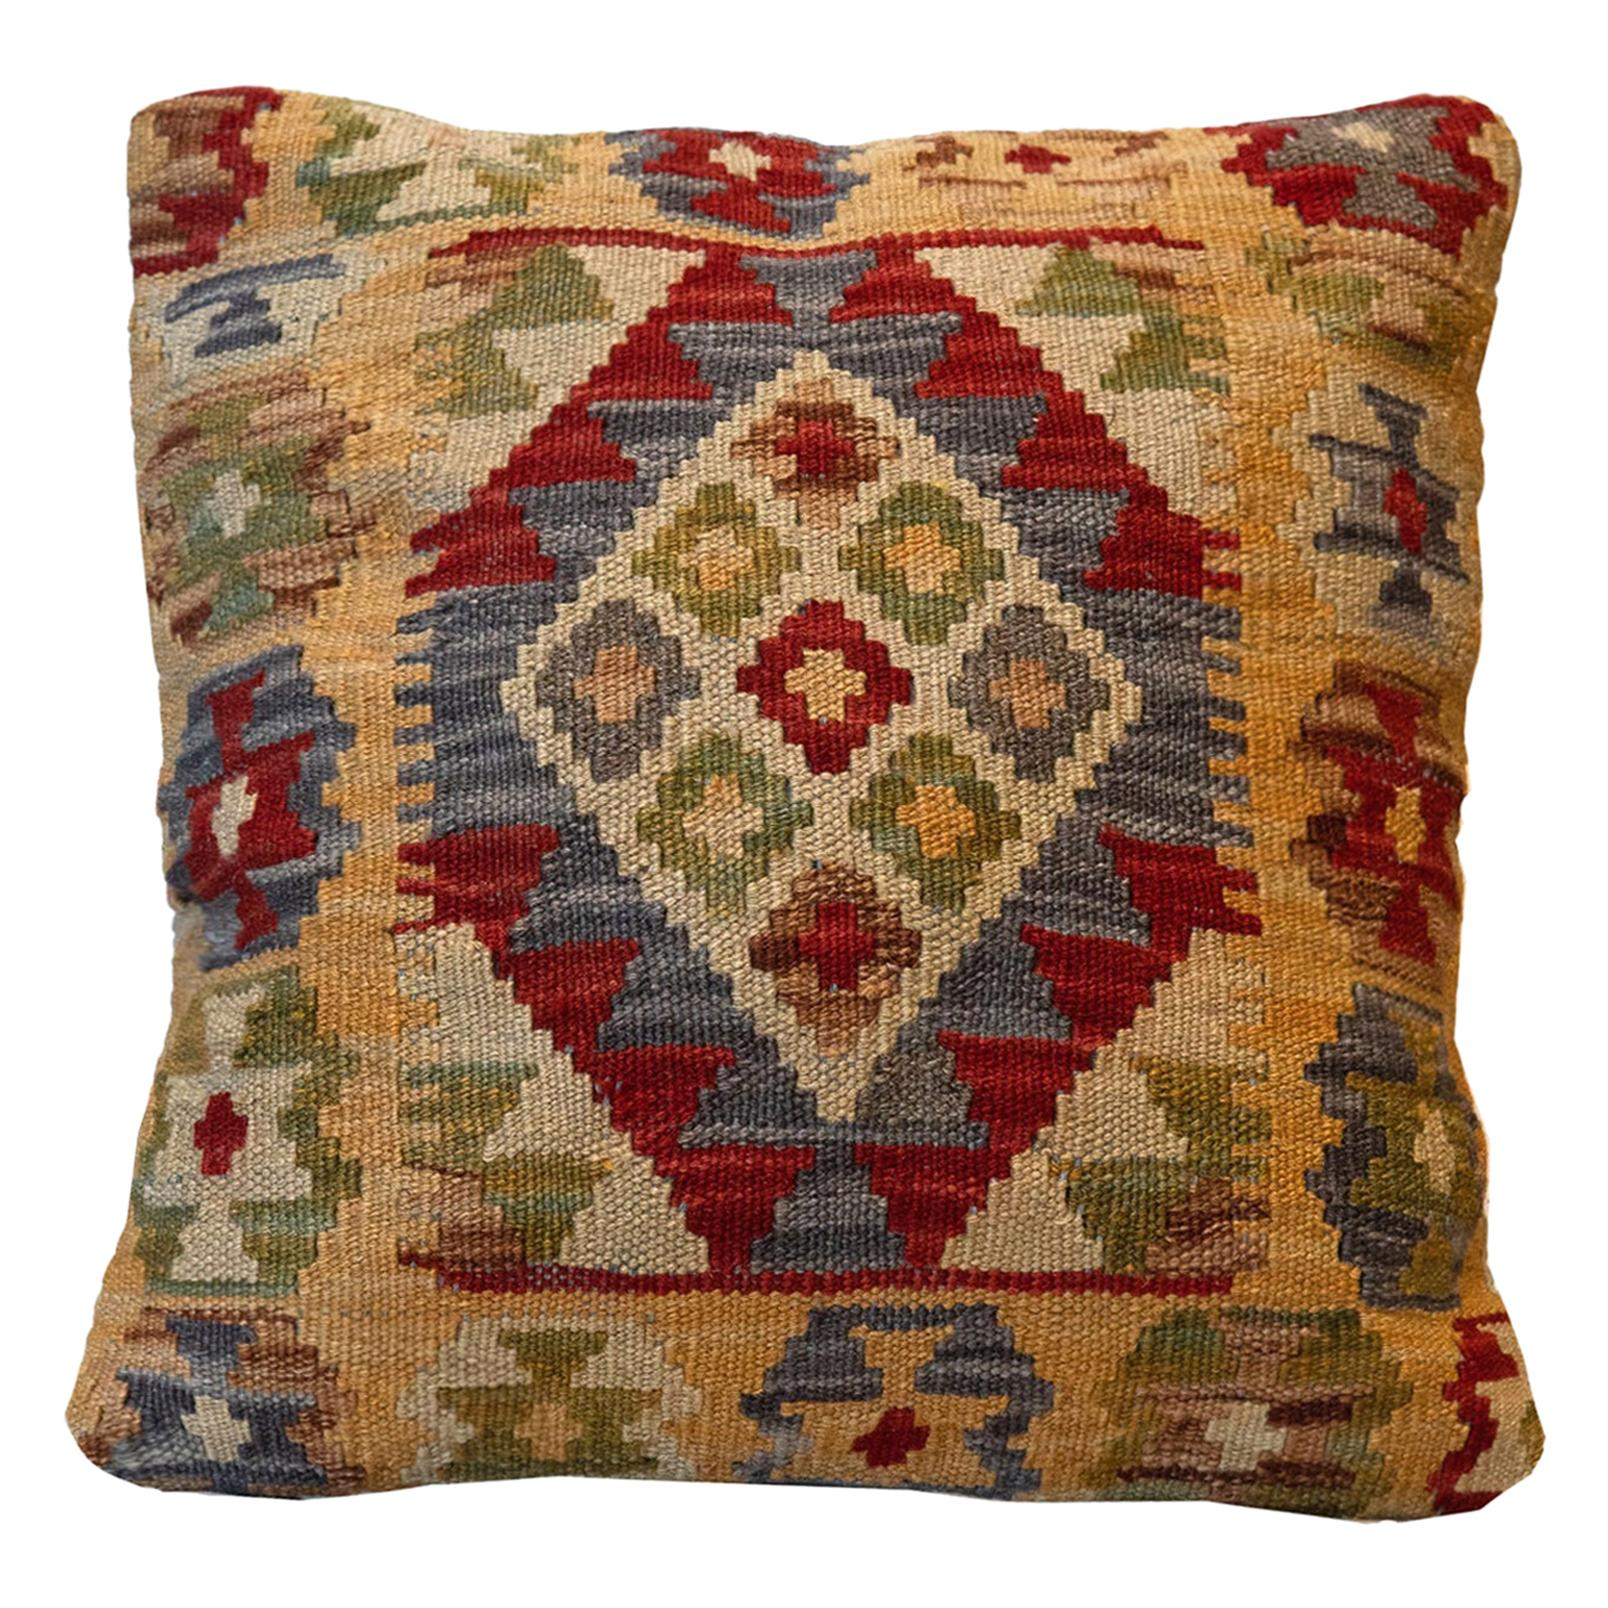 Hand Woven Kilim Cushion Cover Oriental Pillow Case Red Blue Beige Wool